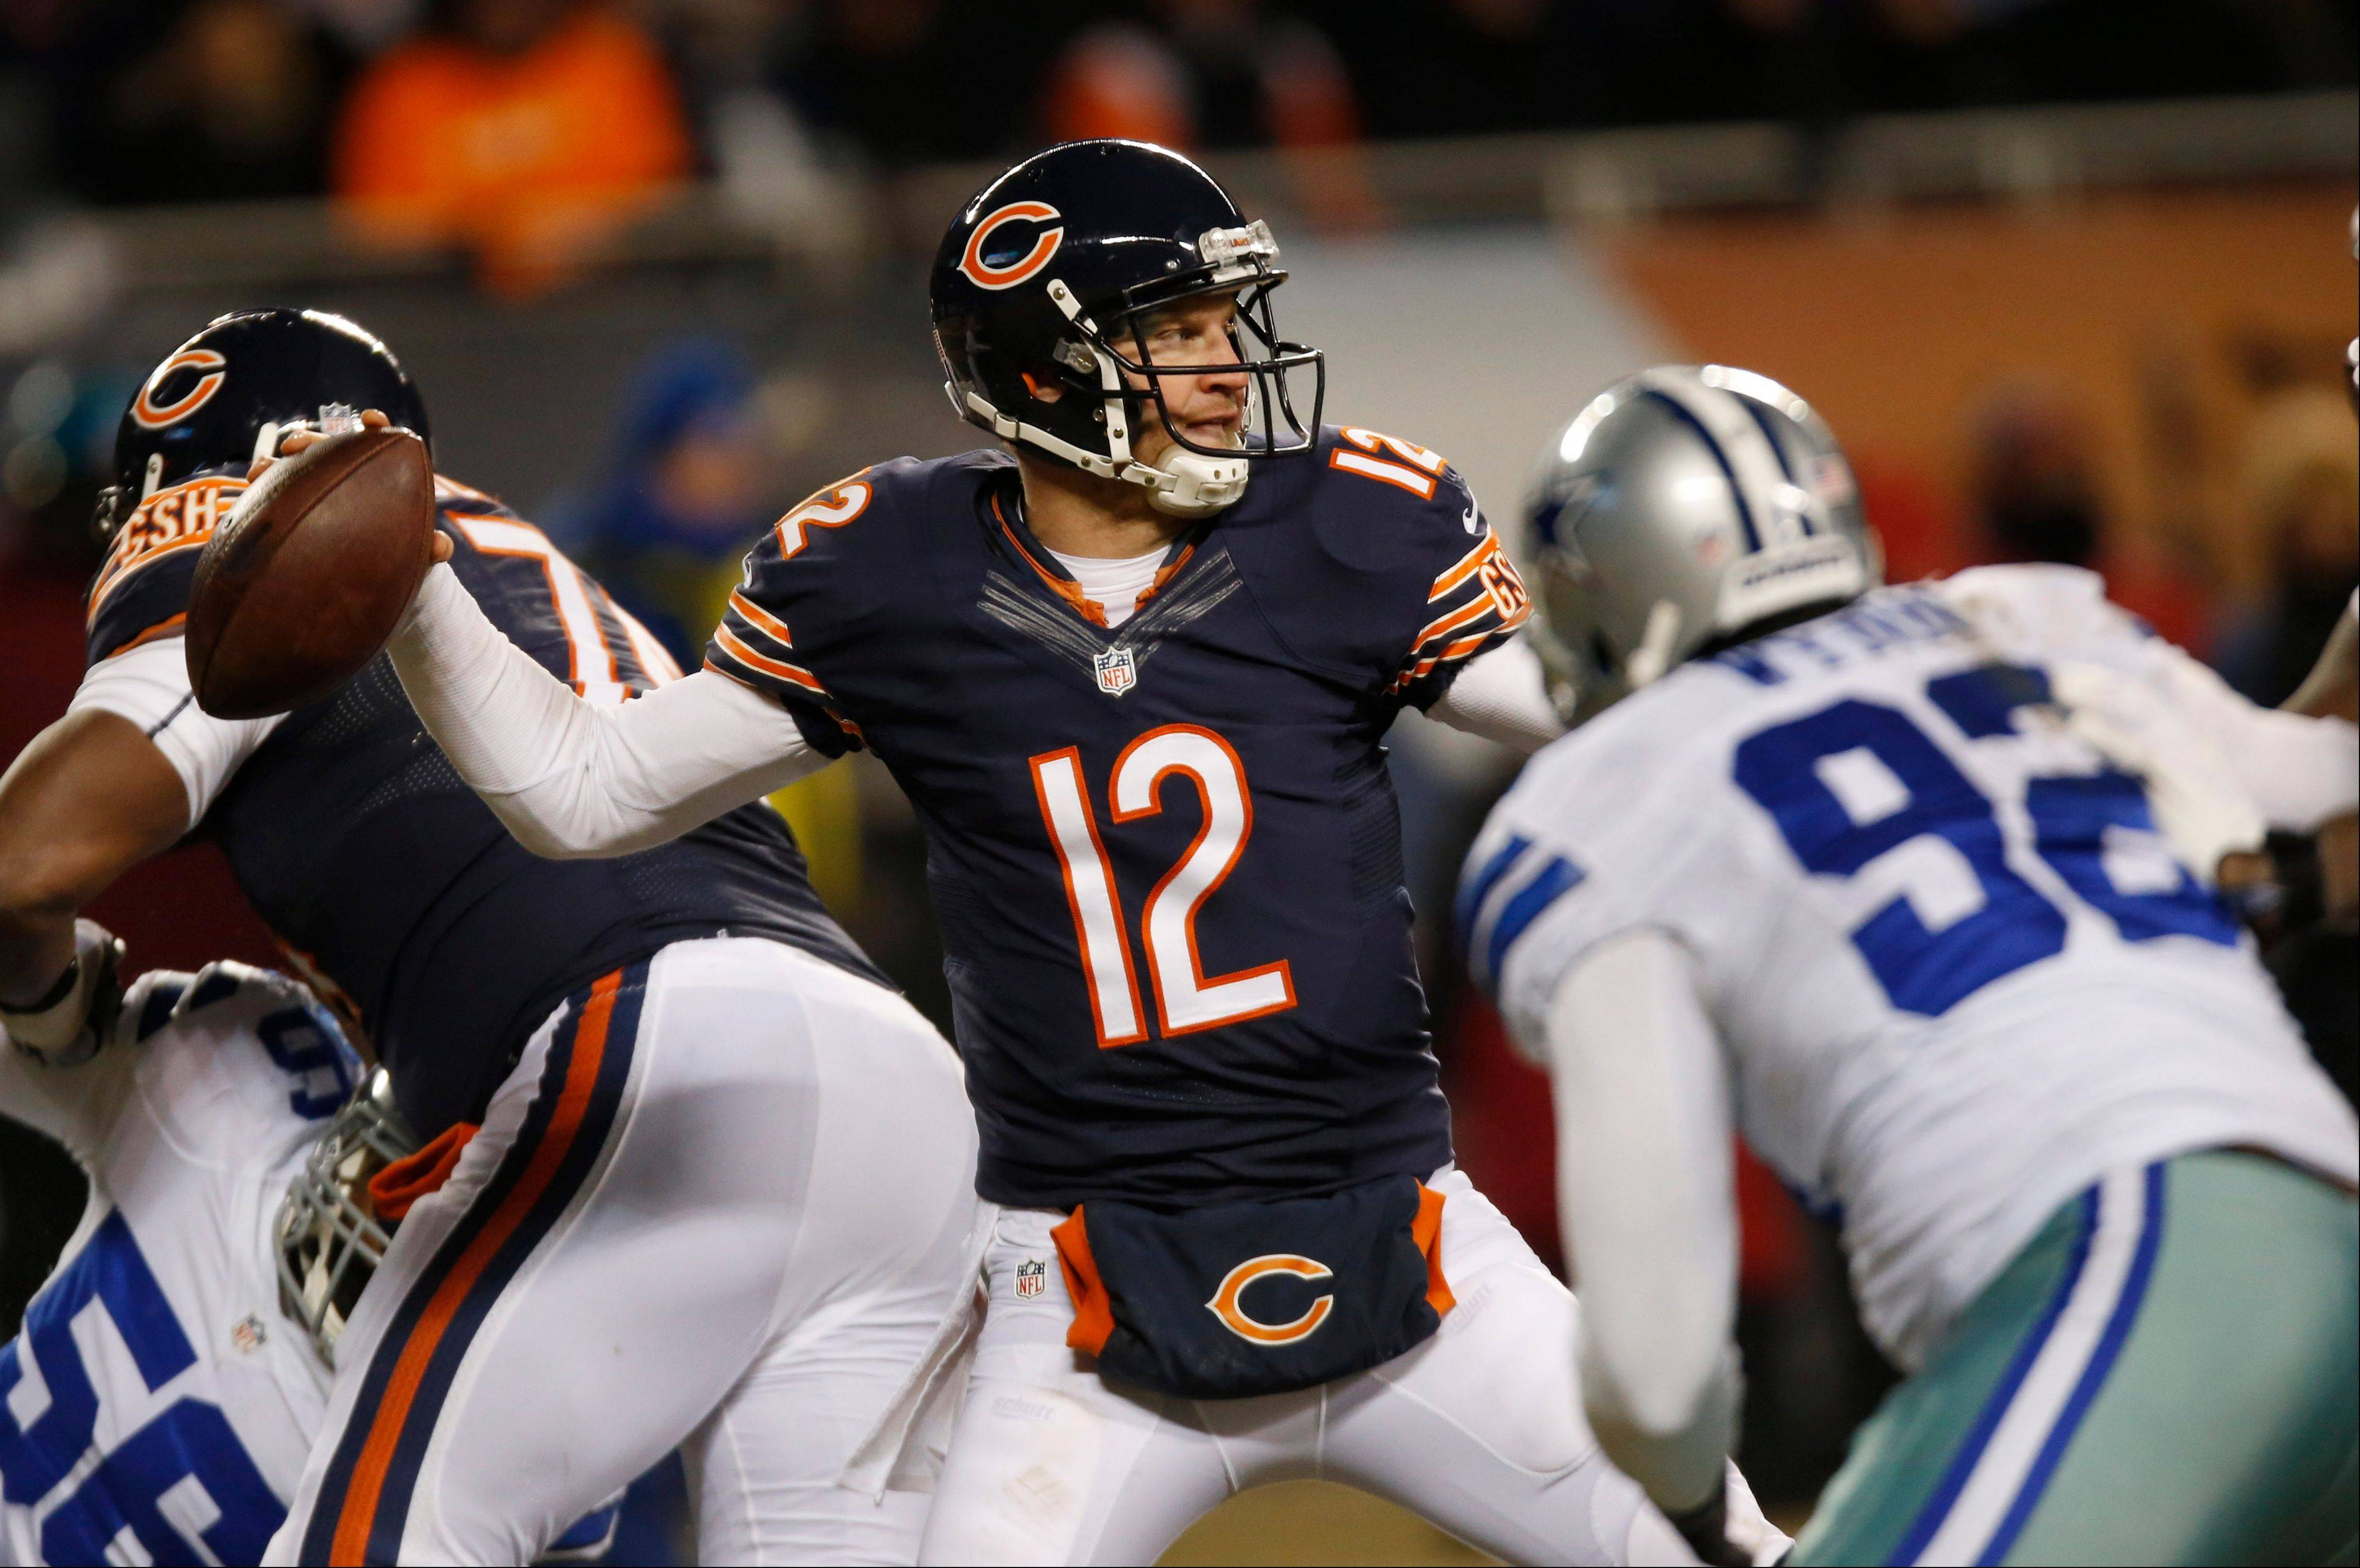 So is Cutler still the Bears' starting quarterback?